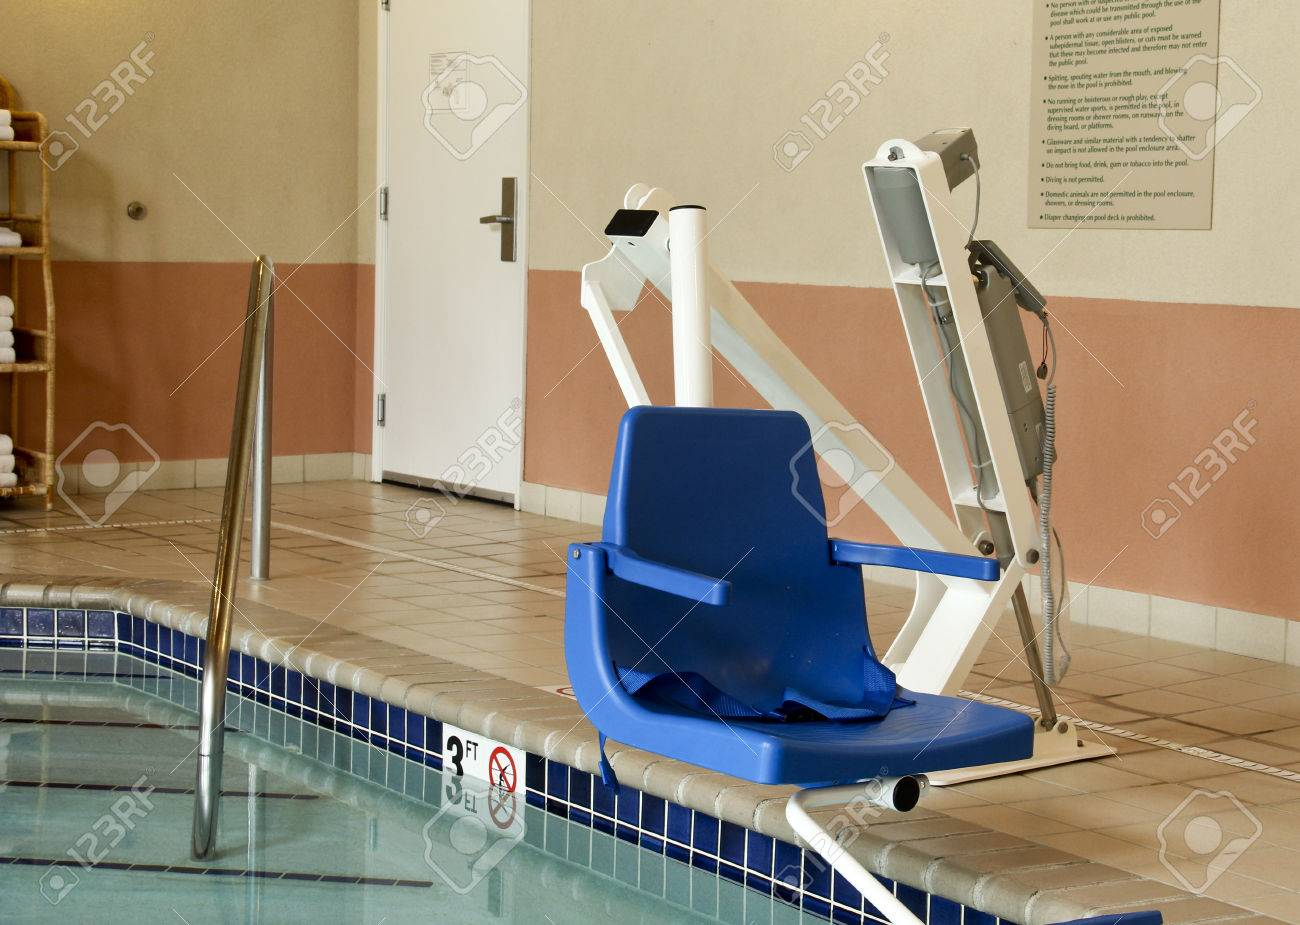 Stock Photo handicapped pool lift chair over an indoor pool  Handicapped  Pool Lift Chair Over. Lift Chair For Handicapped